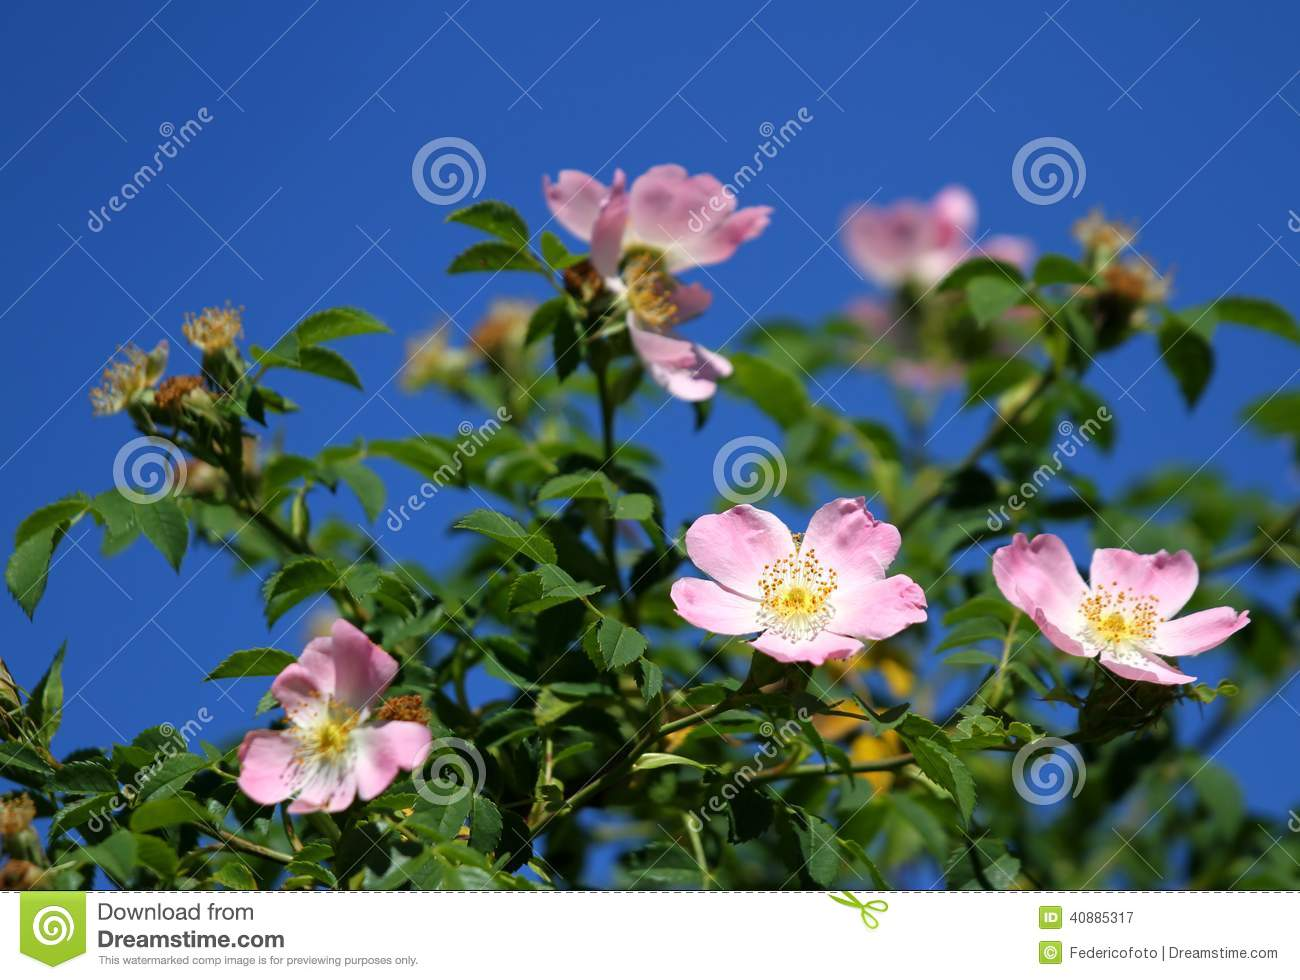 Beautiful pink flowers in the garden stock photography image - Pink Wild Roses In A Bush Of Thorns In Spring Stock Photo